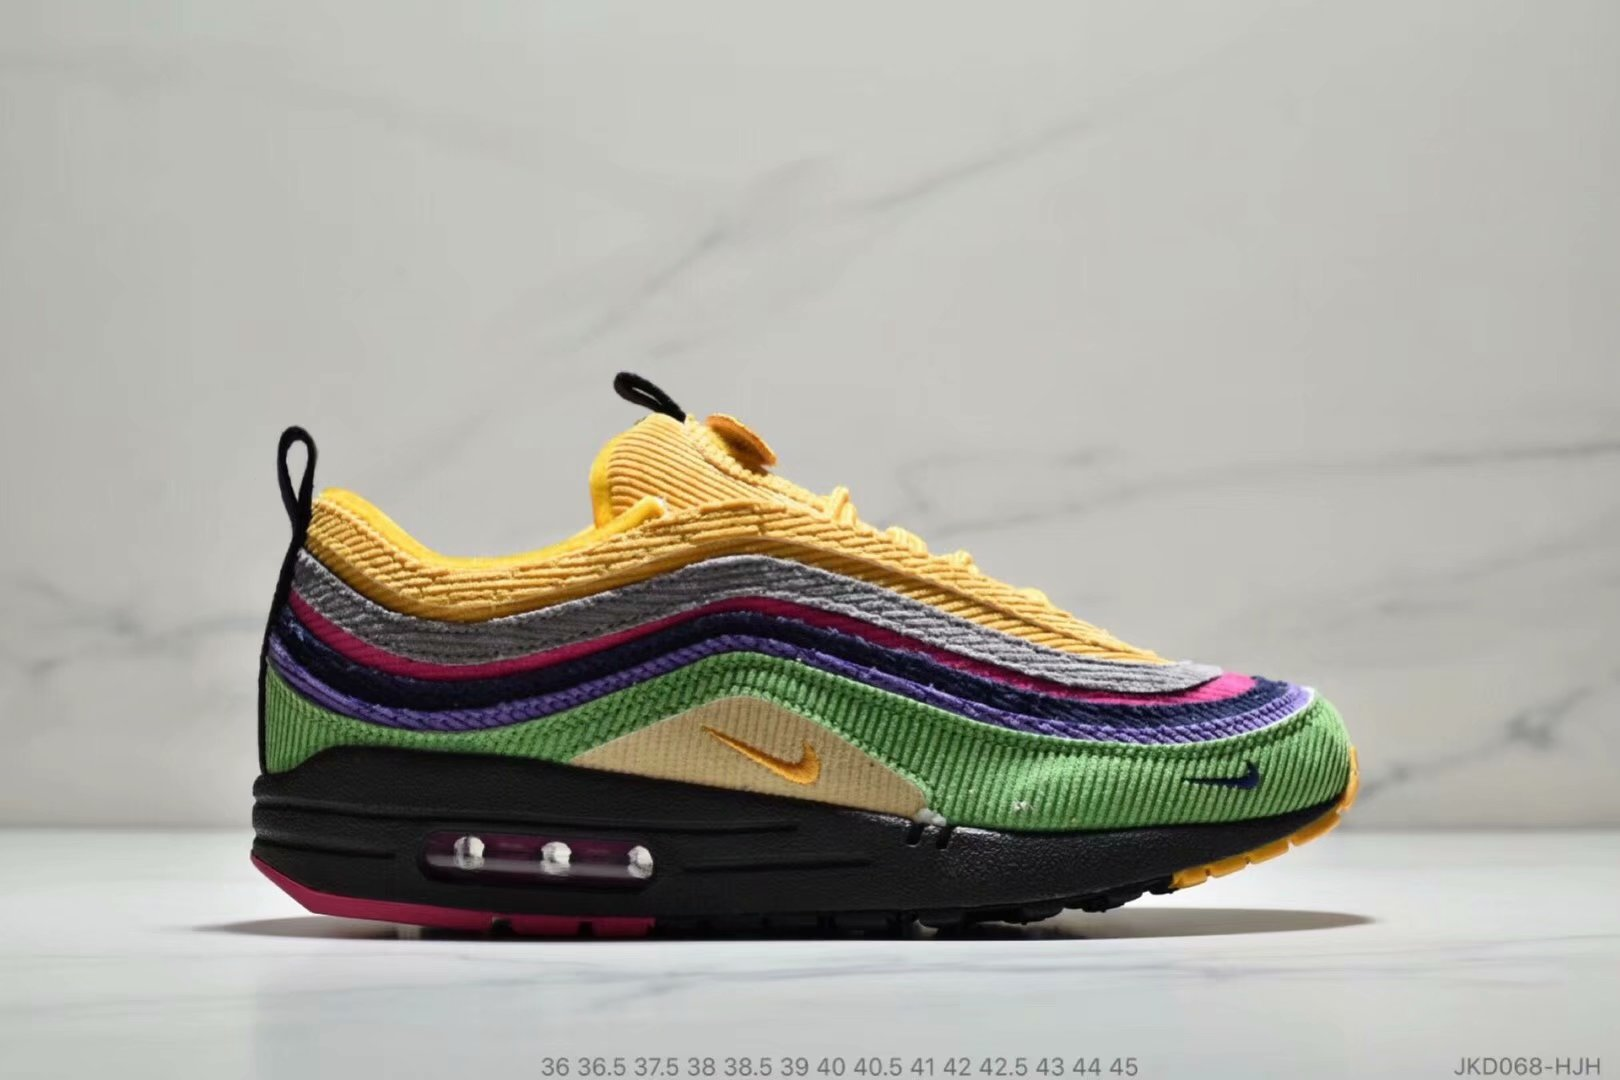 Womens Nike Air Max 87 1 Sean Wotherspoon Grass Green Yellow Grey Purple Black - www.wholesaleflyknit.com